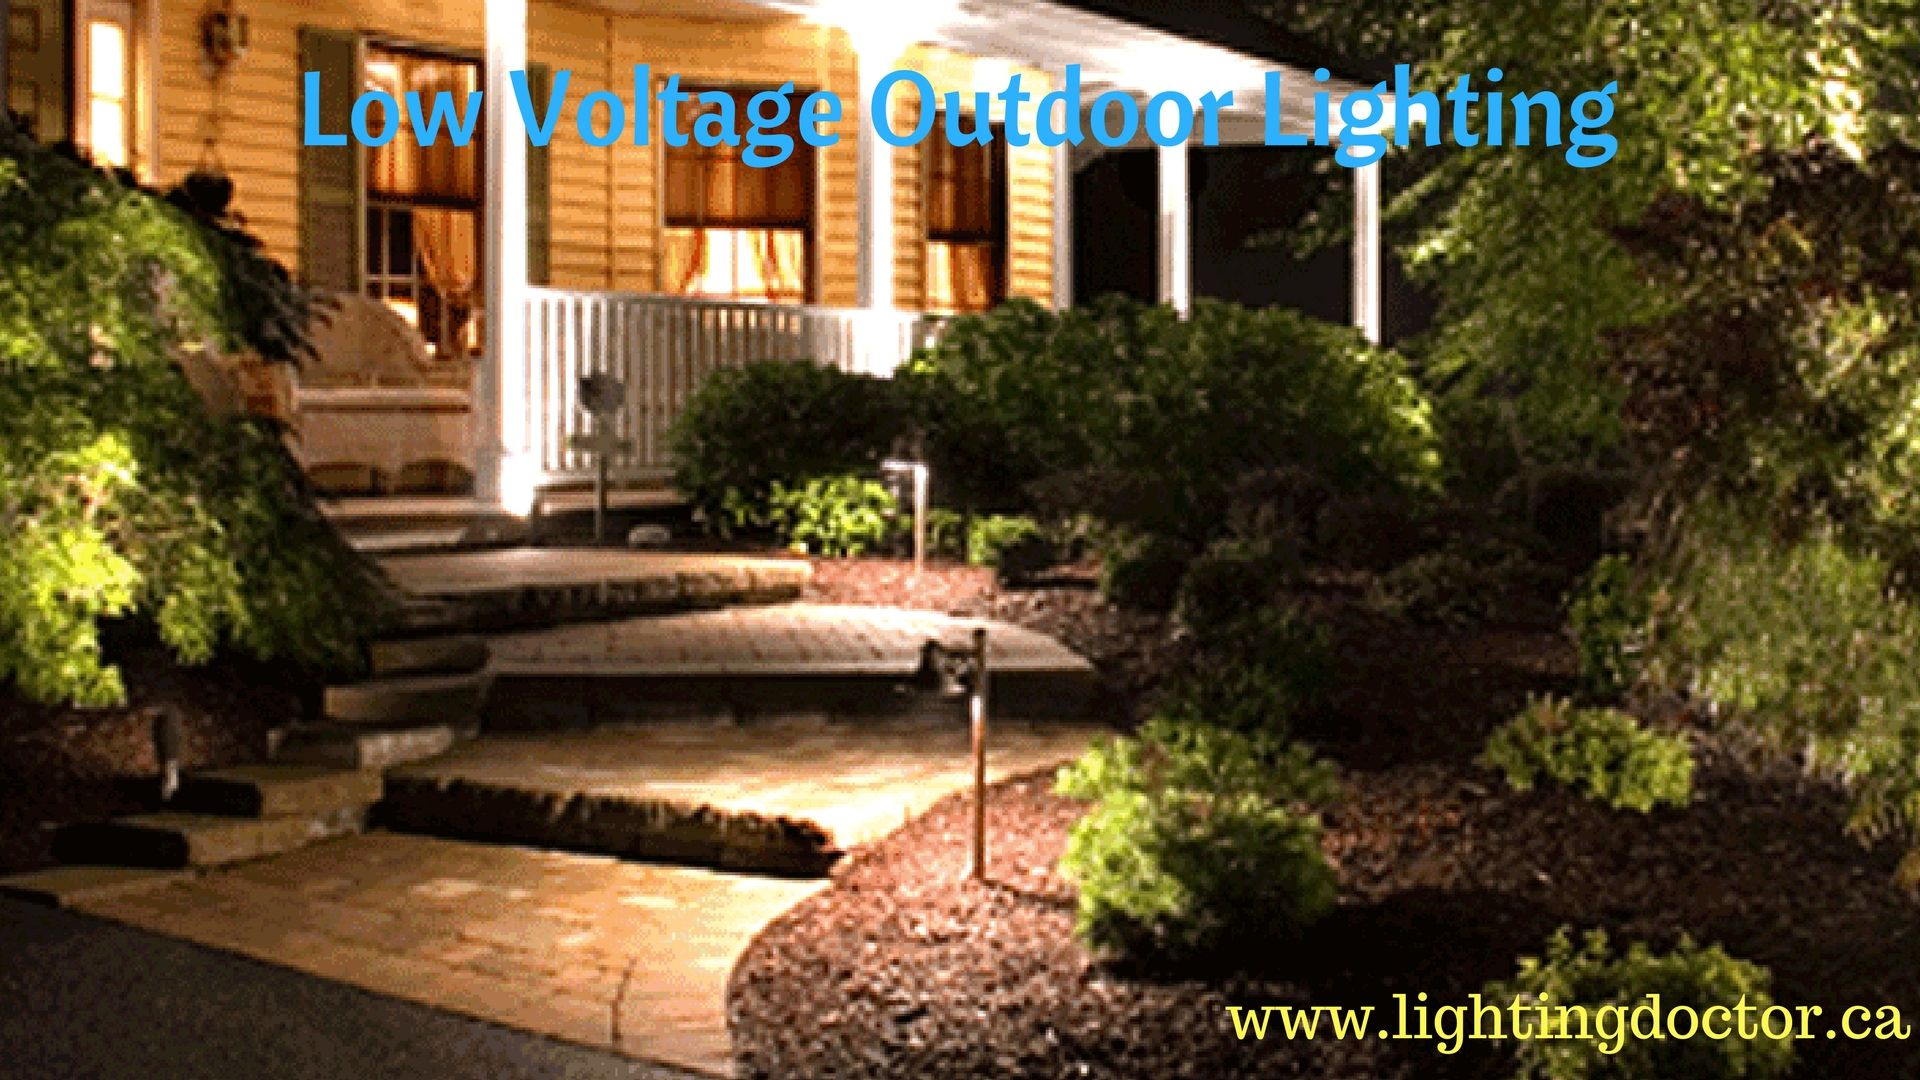 Low voltage outdoor lighting canada make your landscape beautiful low voltage outdoor lighting canada make your landscape beautiful enhance the beauty of your landscape with aloadofball Gallery